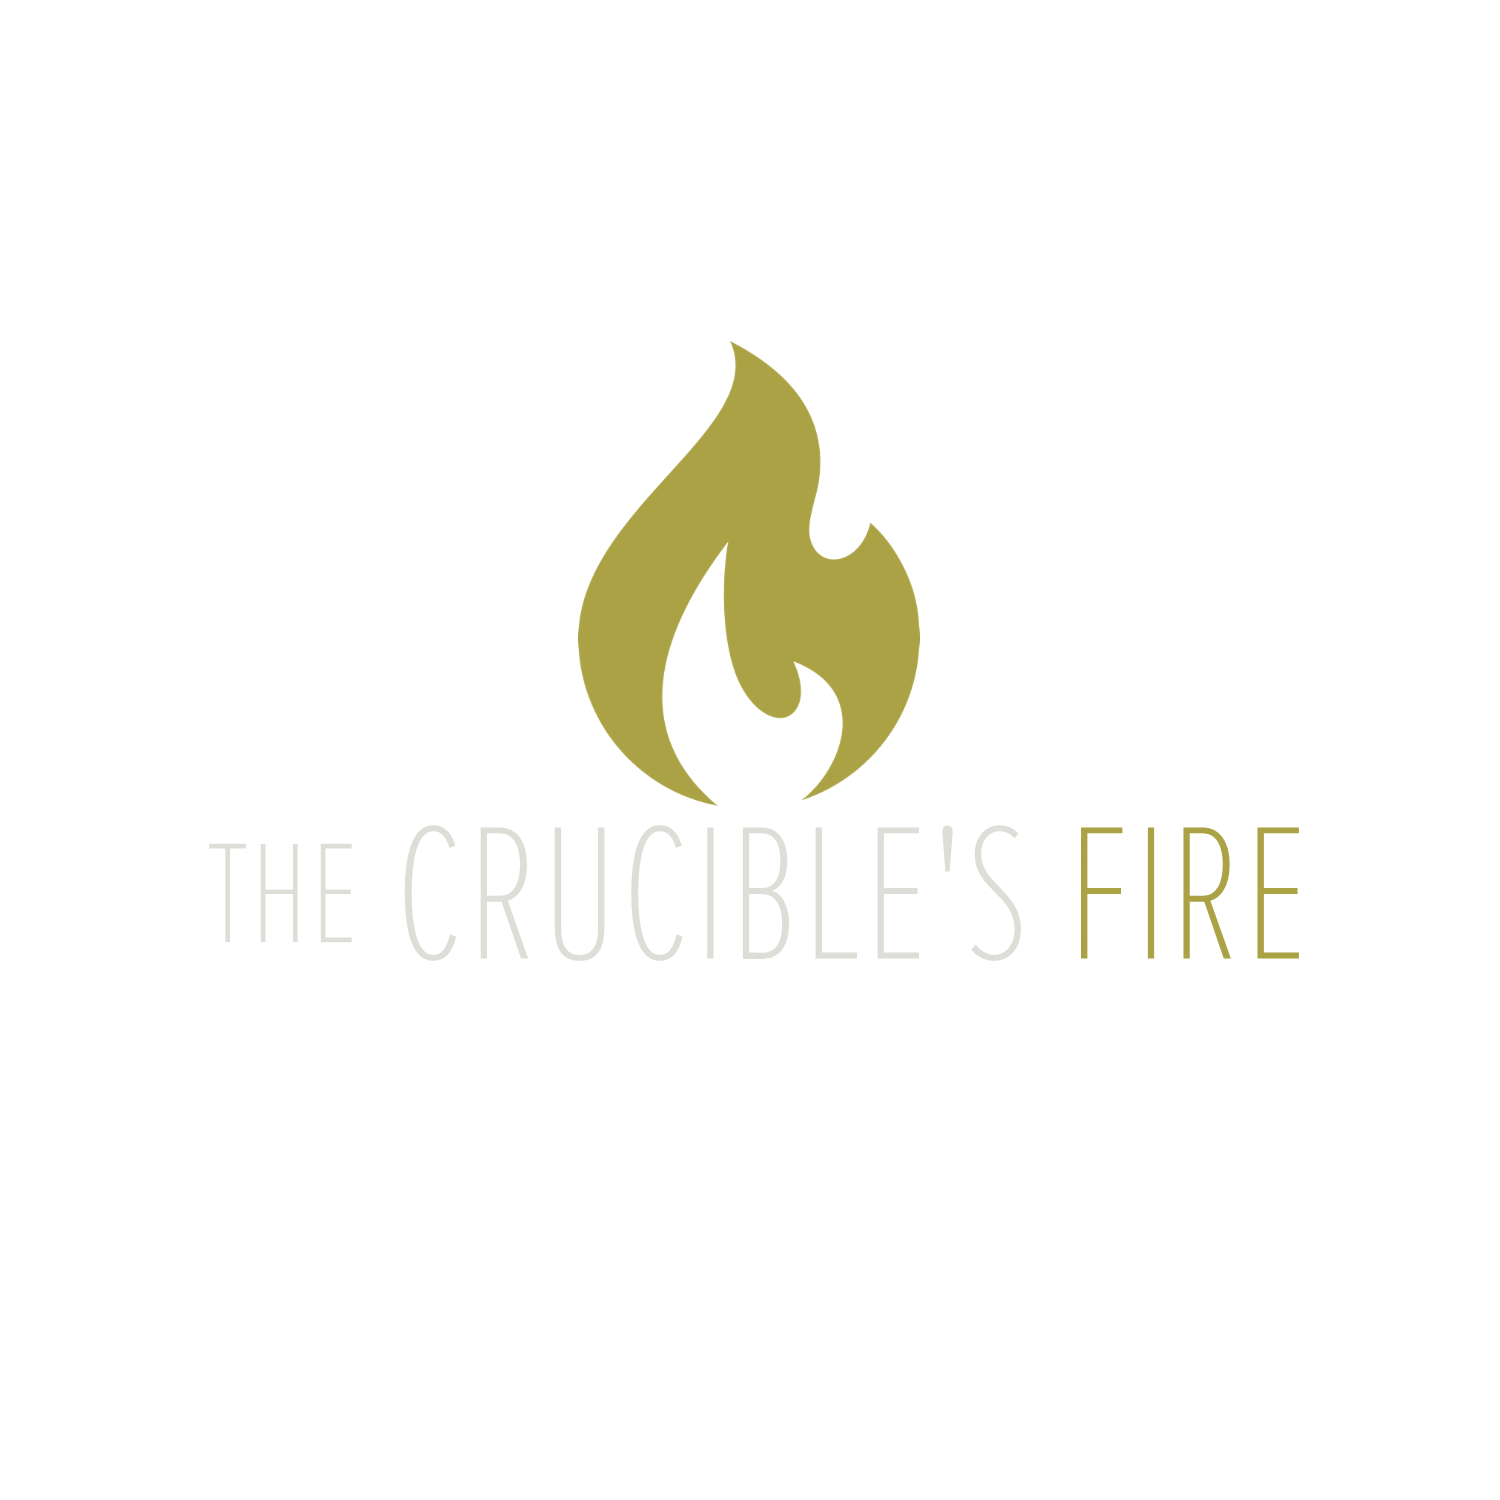 The Crucible's Fire